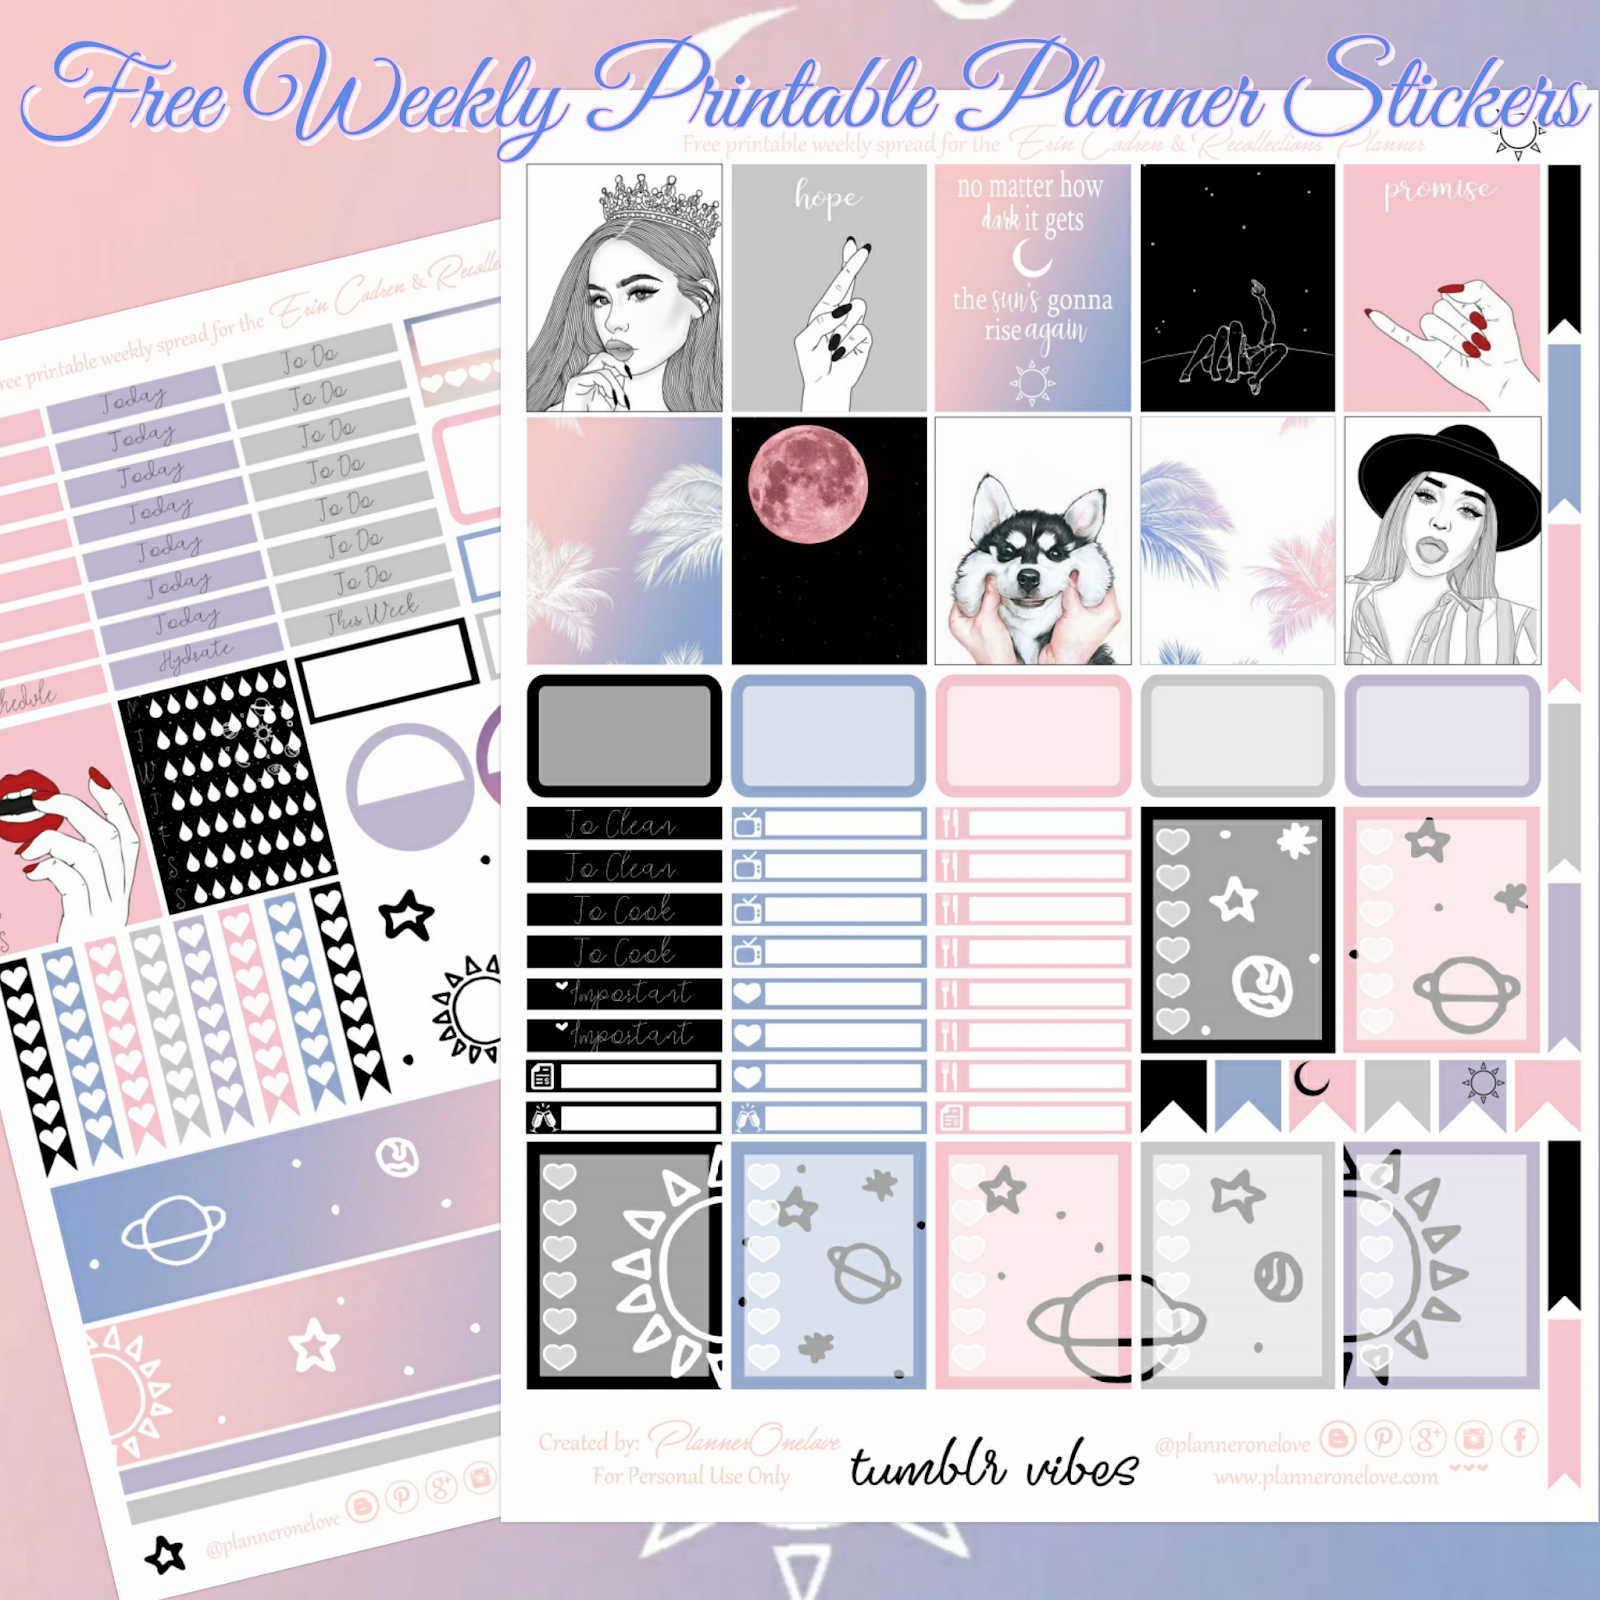 photograph regarding Planner Tumblr titled free of charge tumblr vibes printable planner stickers for the Erin